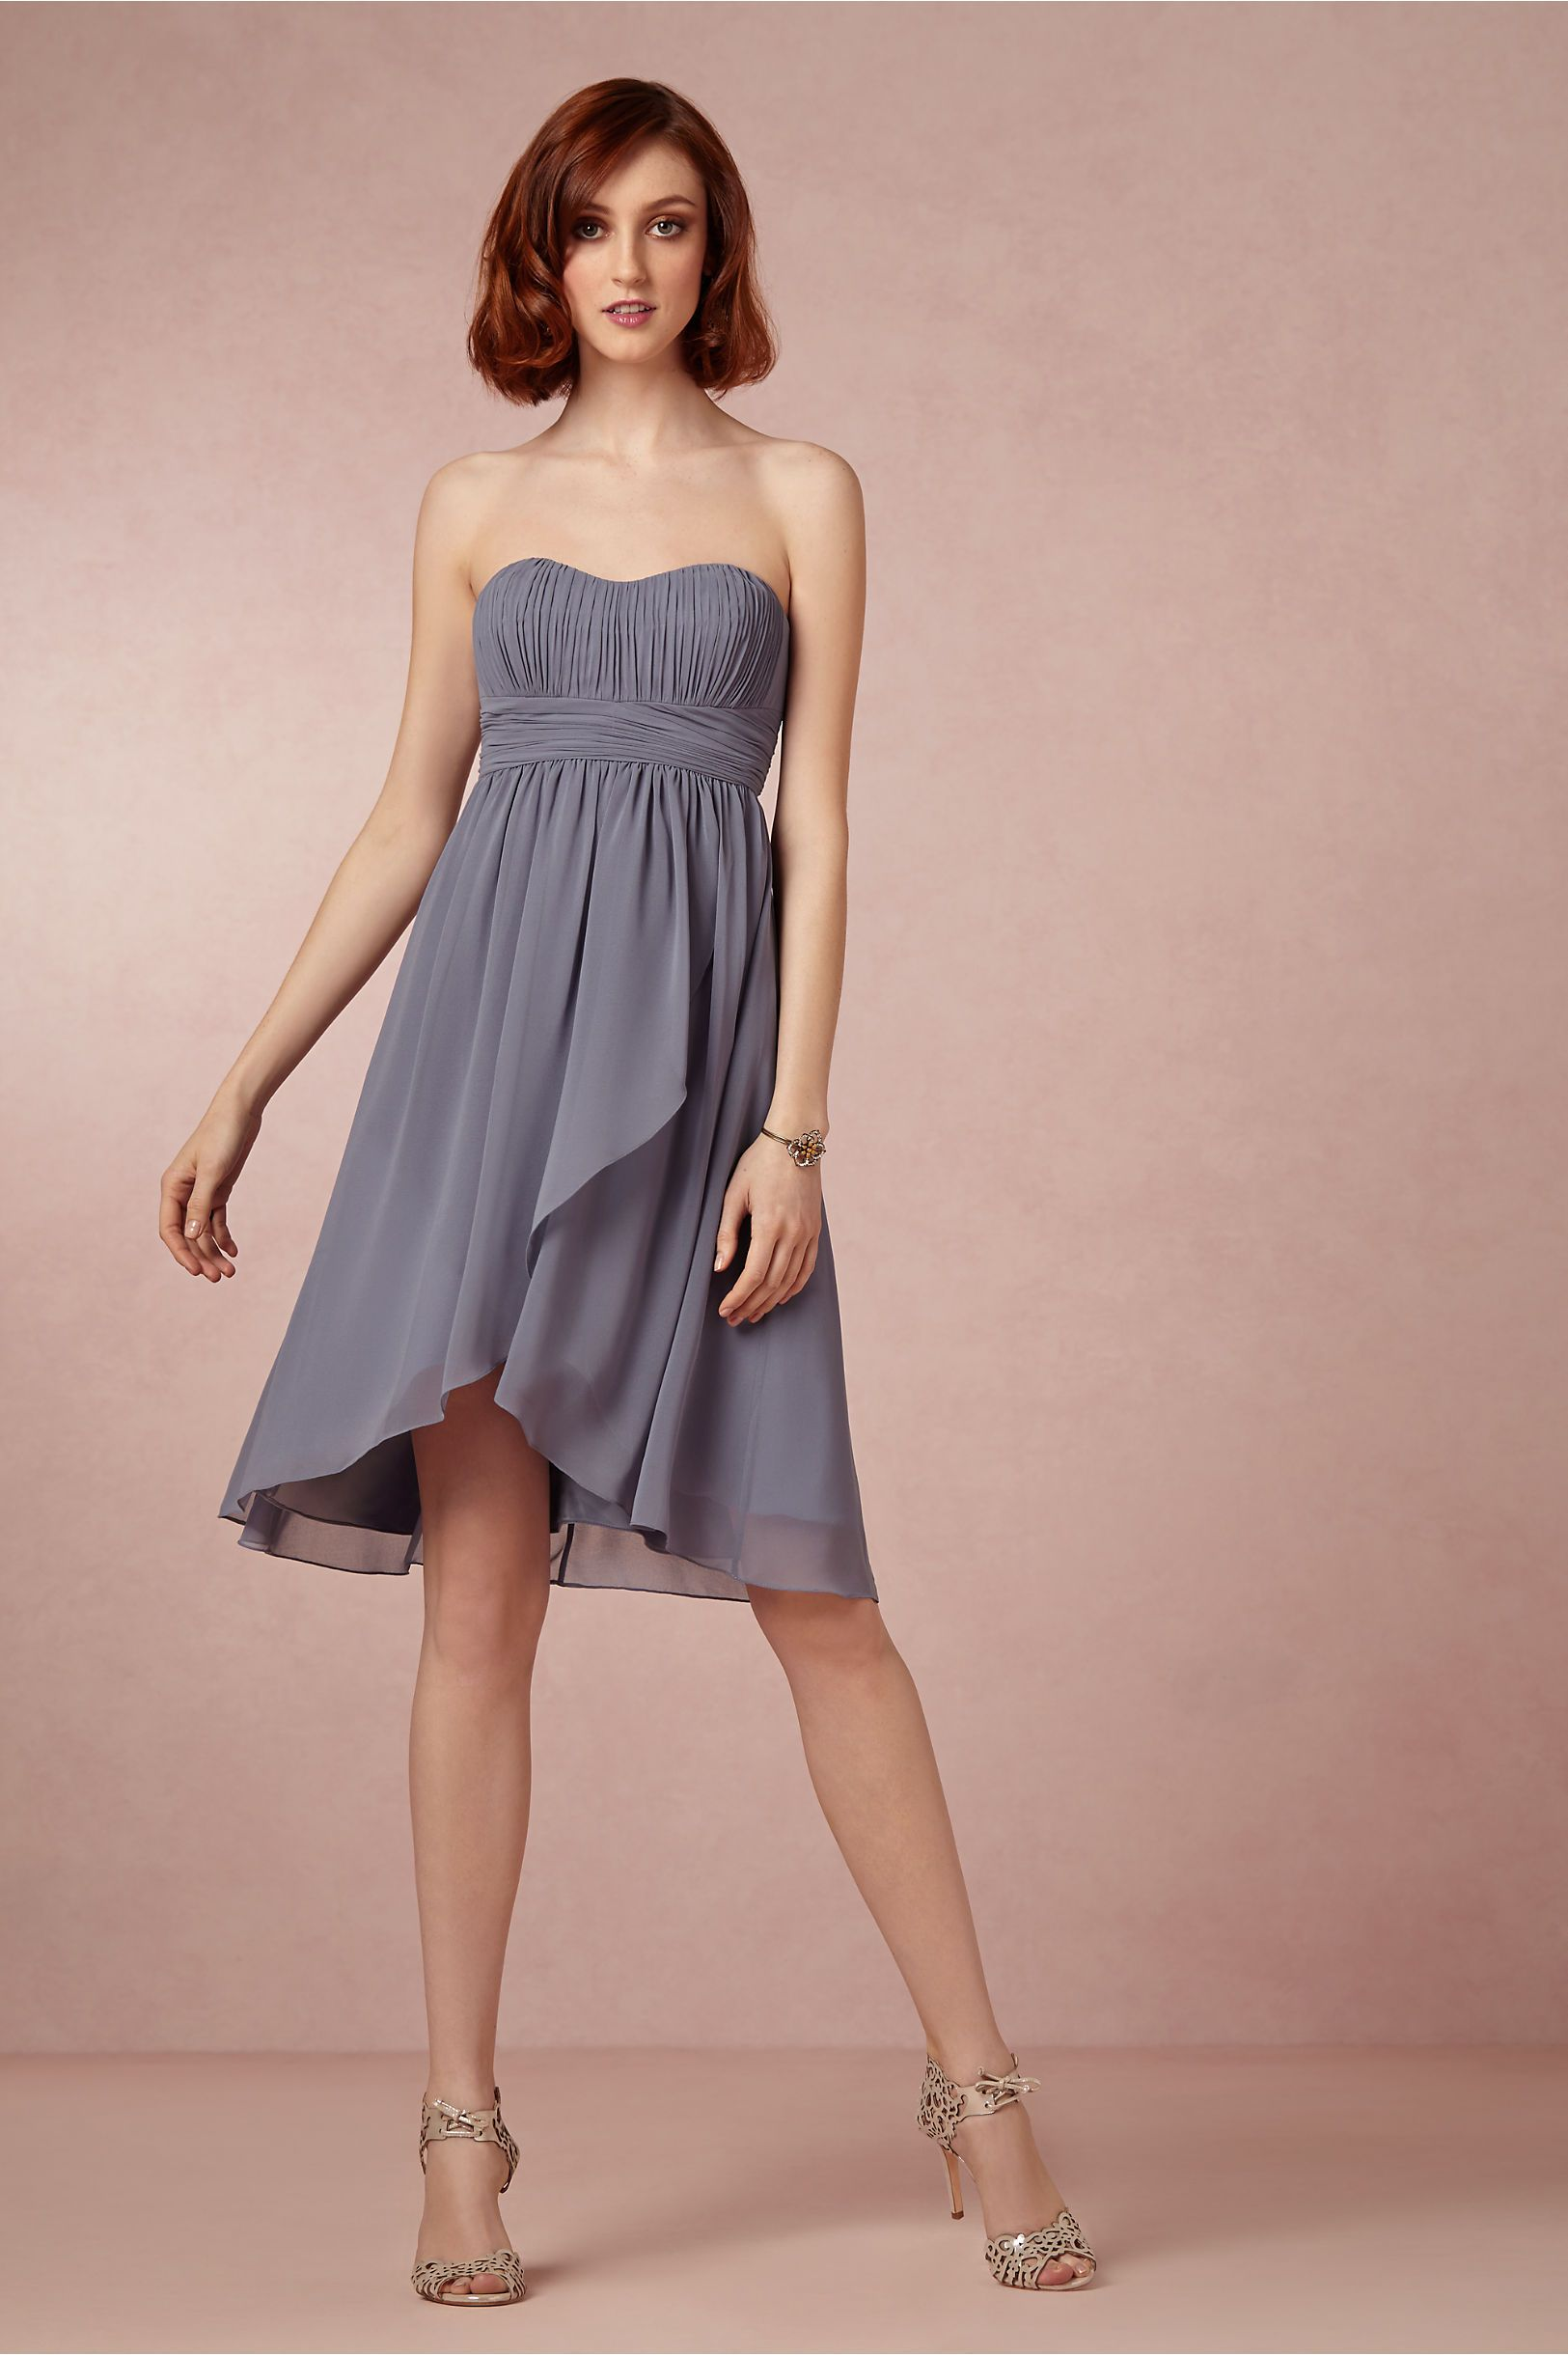 Alice dress from bhldn currently on sale for dapper